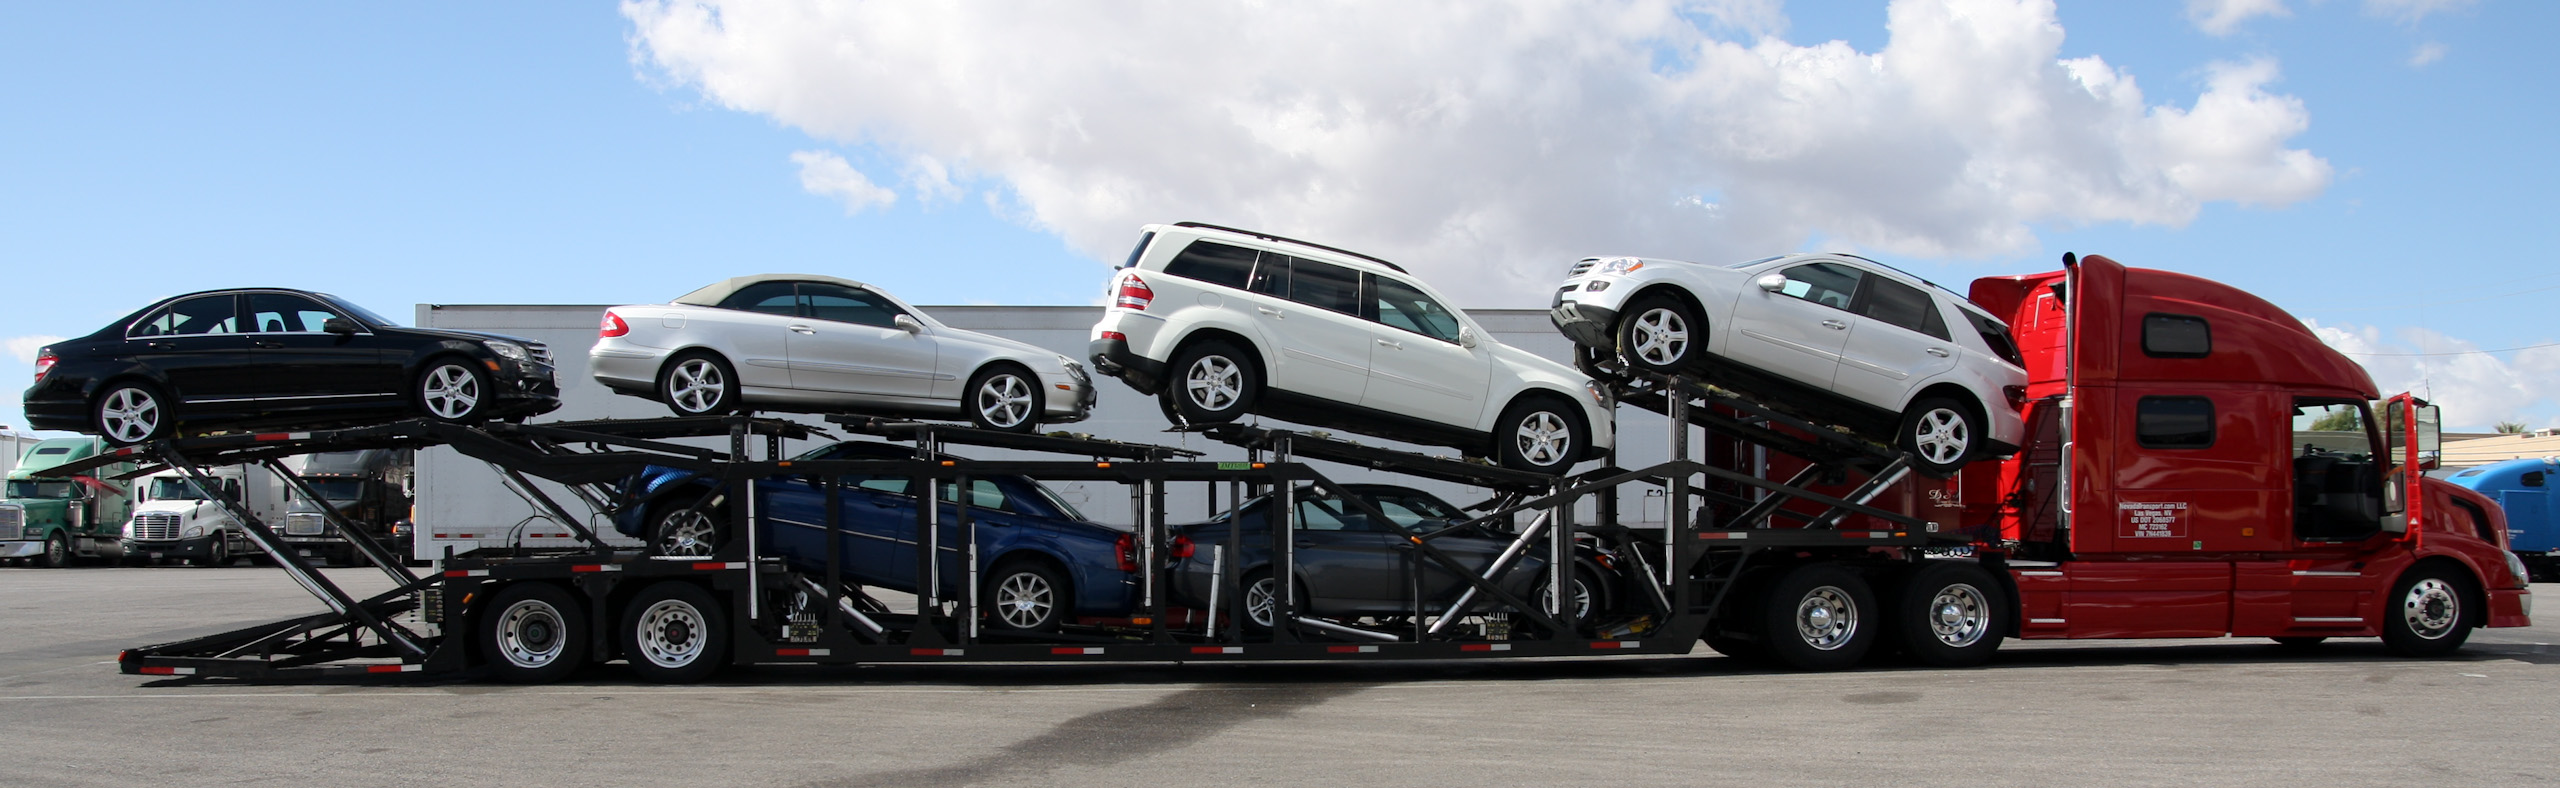 Commercial Car Haulers For Sale In Florida